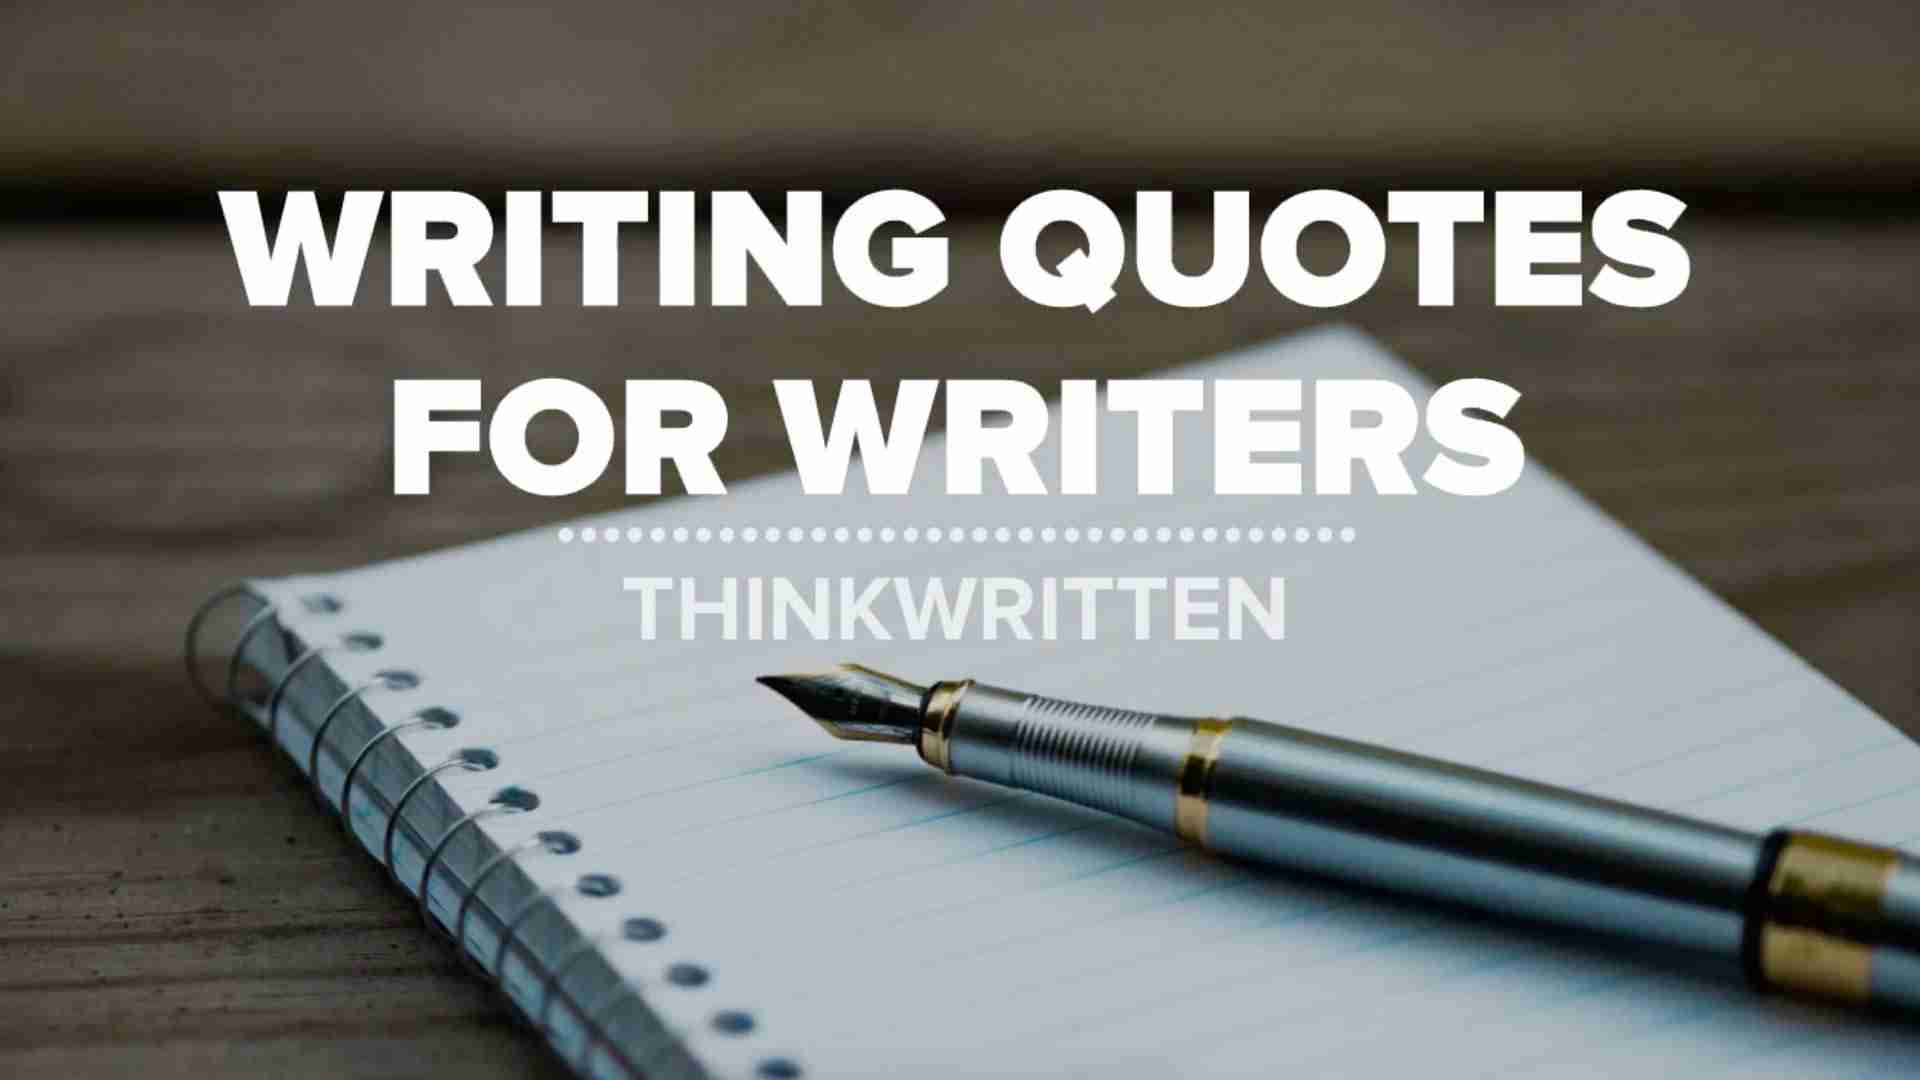 Writing Quotes 101 Quotes For Writers To Inspire You